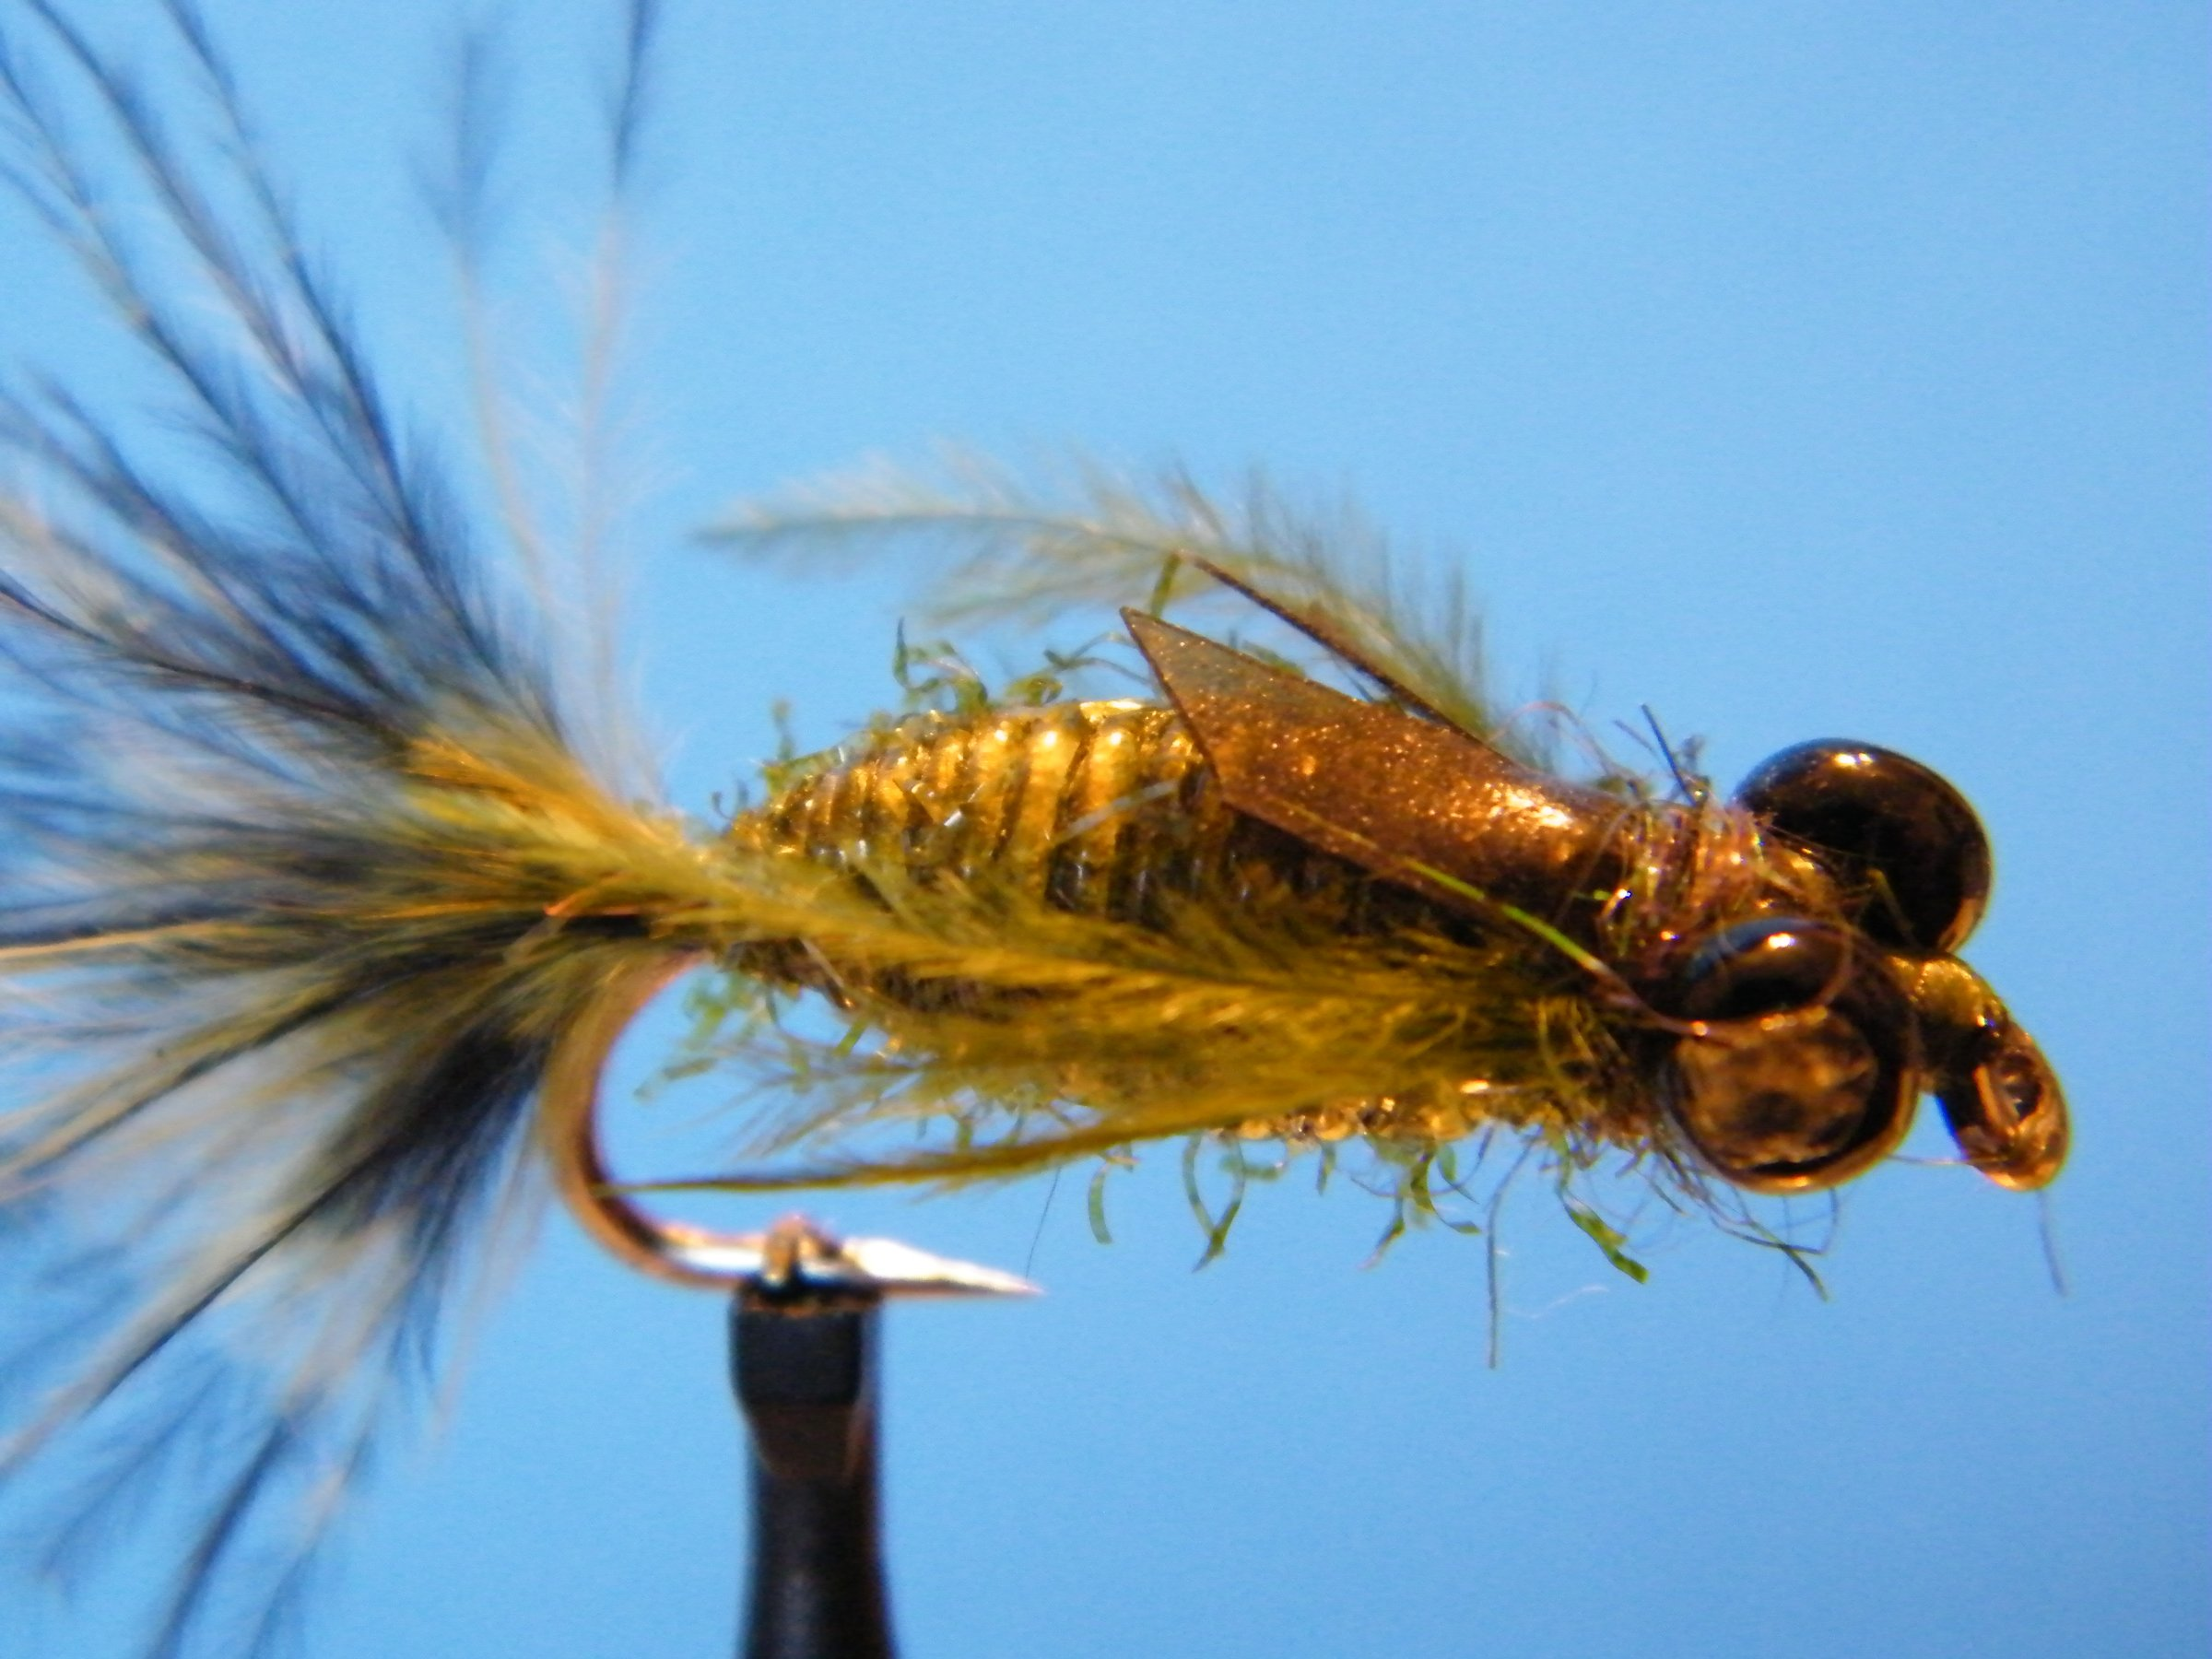 Fly fishing tackle shop eastern cape south africa for The fly fishing shop